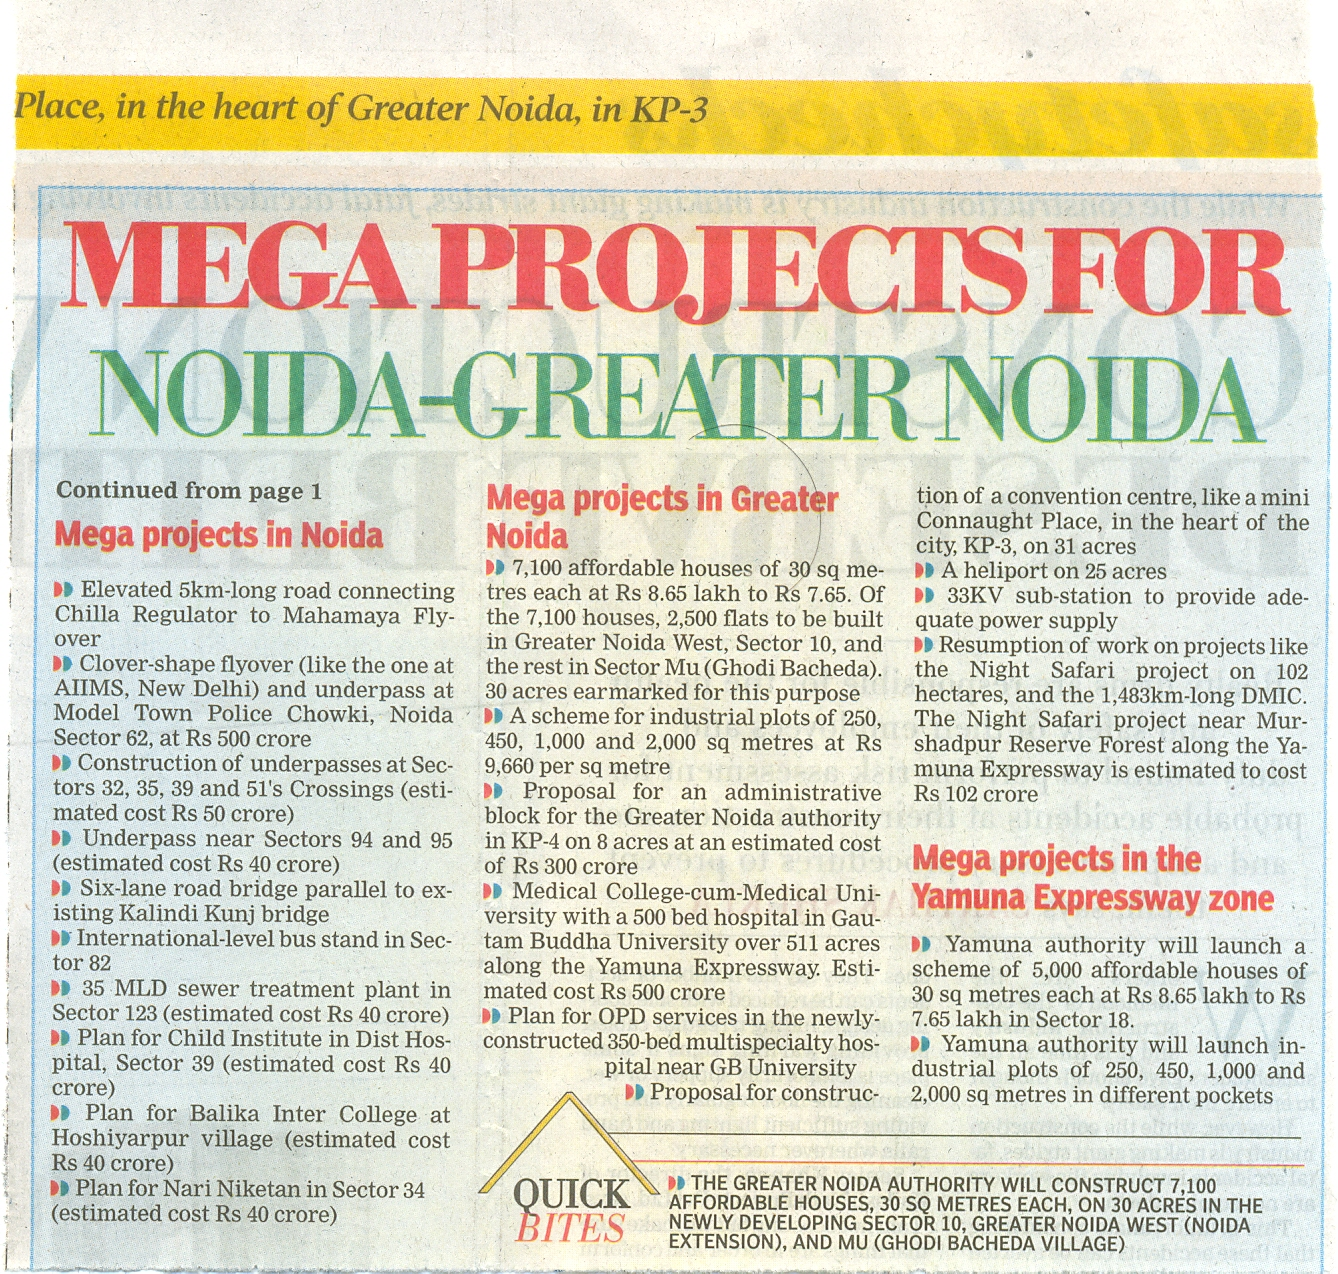 MEGA PROJECTS FOR NOIDA-GREATER NOIDA